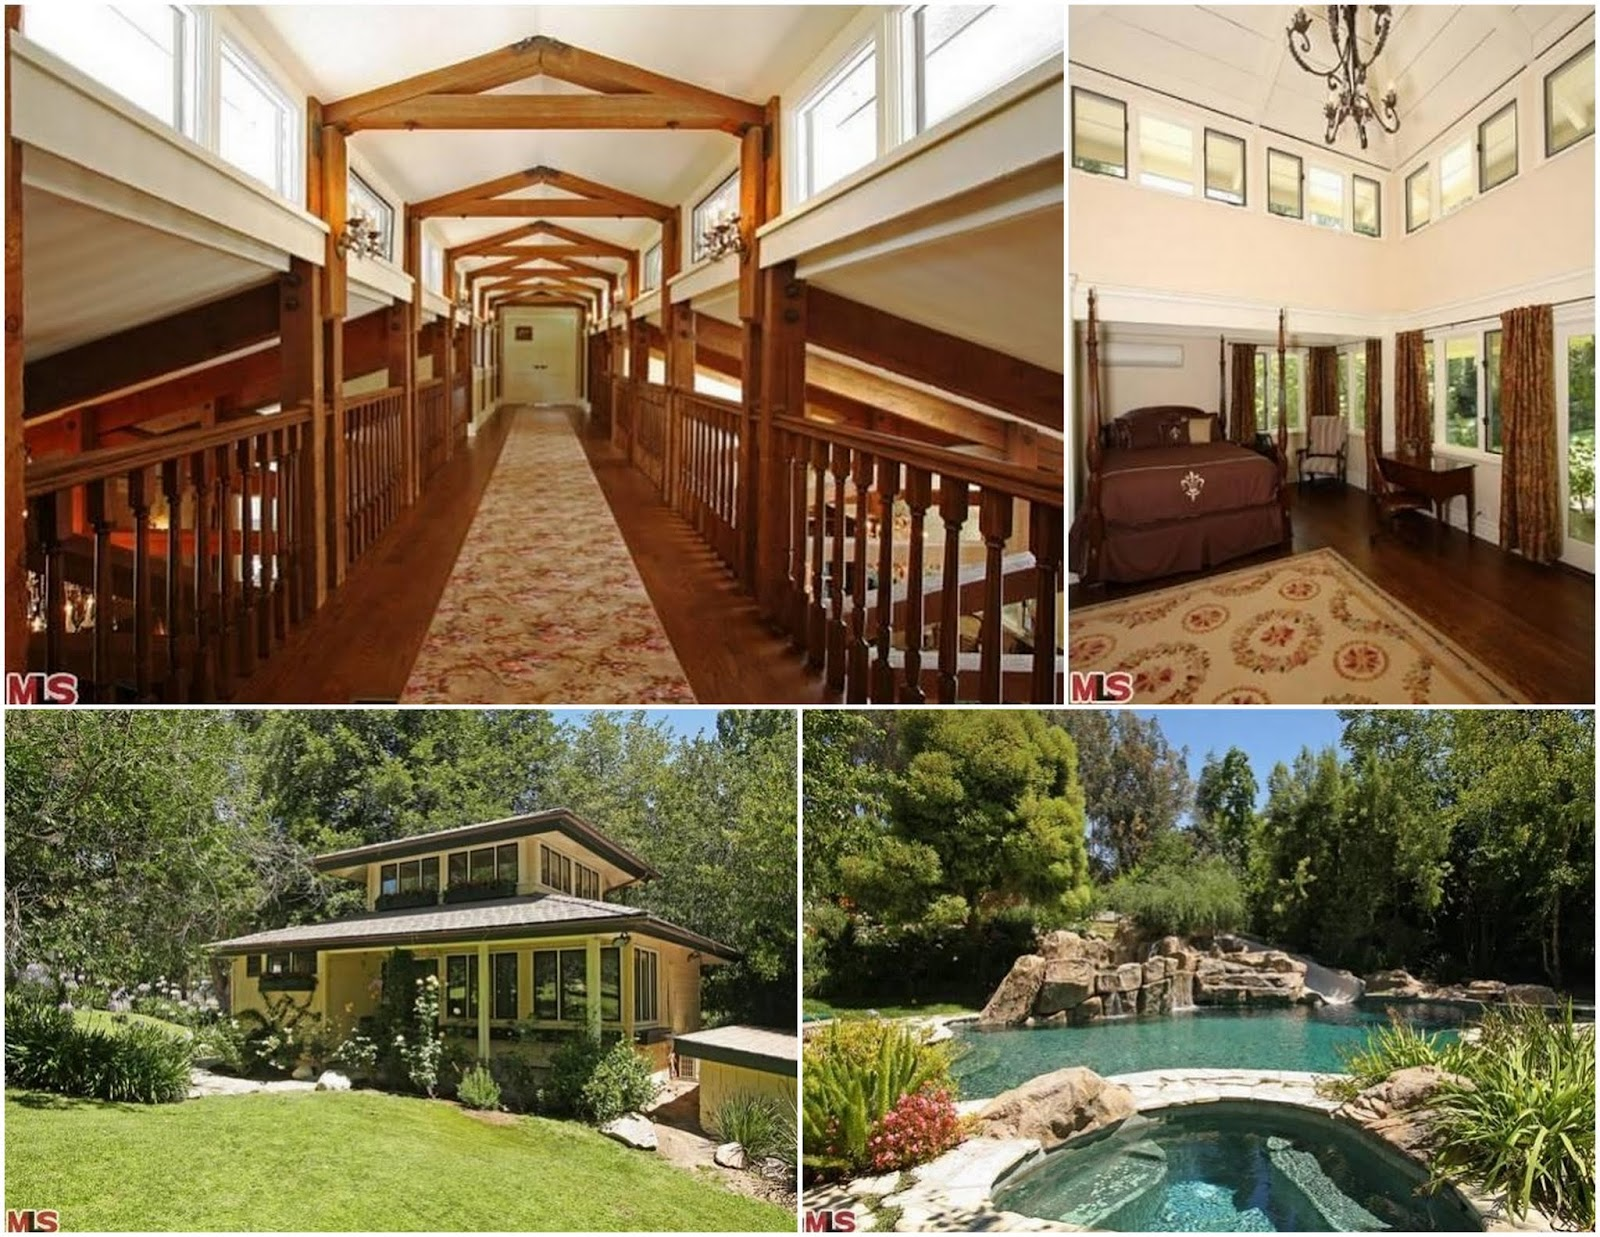 celebrity real estate former lisa marie presley estate in